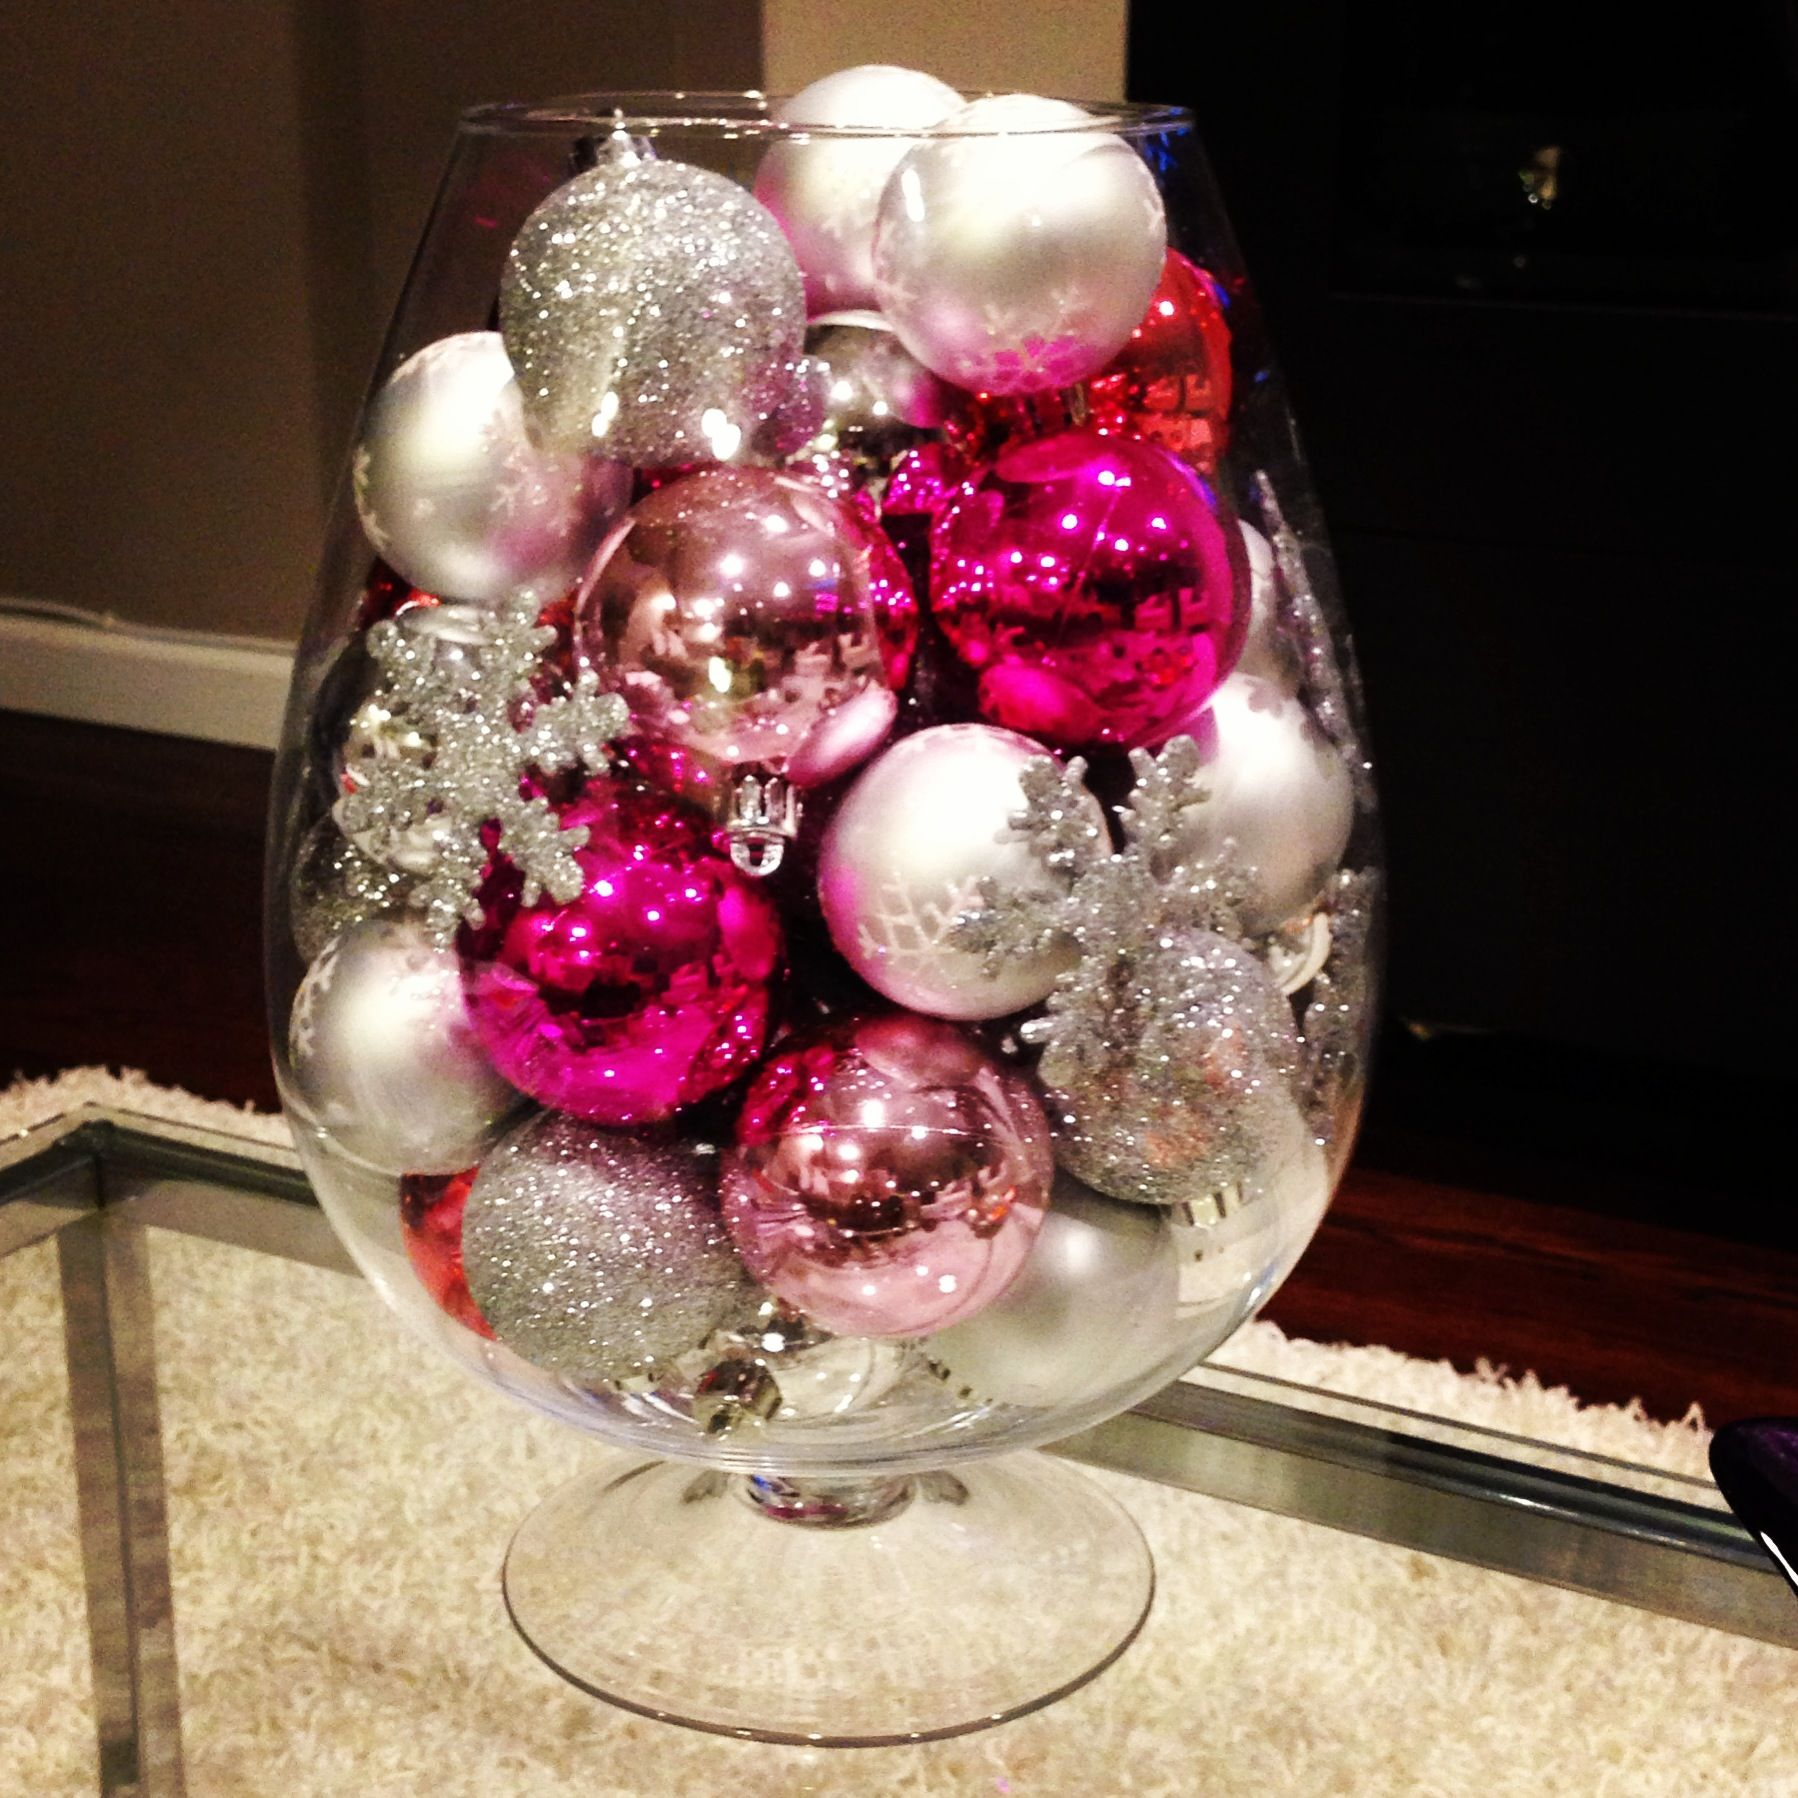 Diy Christmas Decor  Oversized Wine Glass Vase From Marshall's And Add  Some Pretty Ornaments I Like The Silver Snowflake Ornaments In This Vase